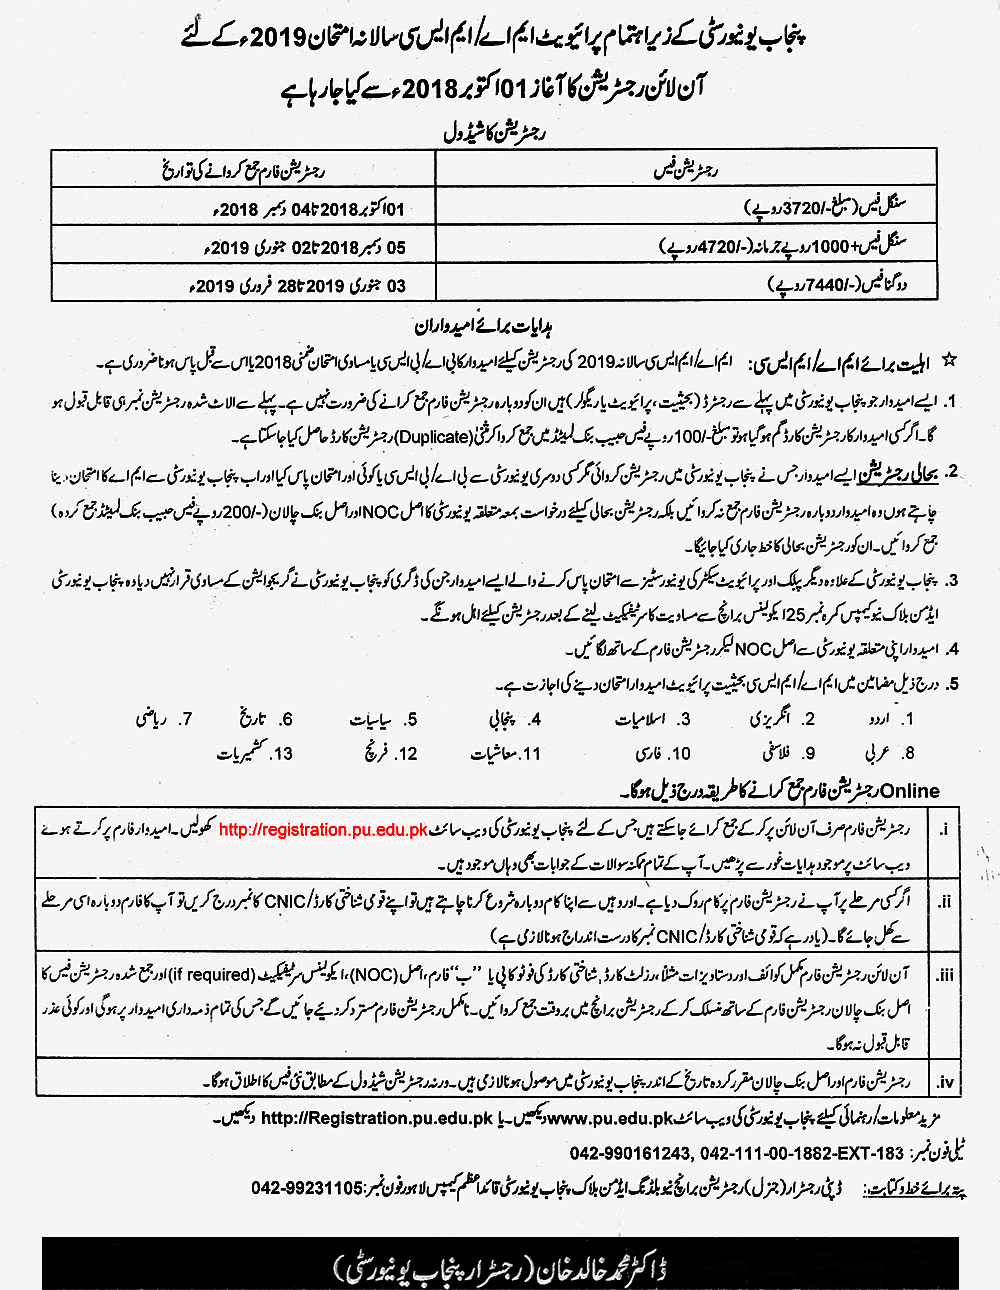 Punjab University Ma Private Admission 2019 Last Date Supplementary